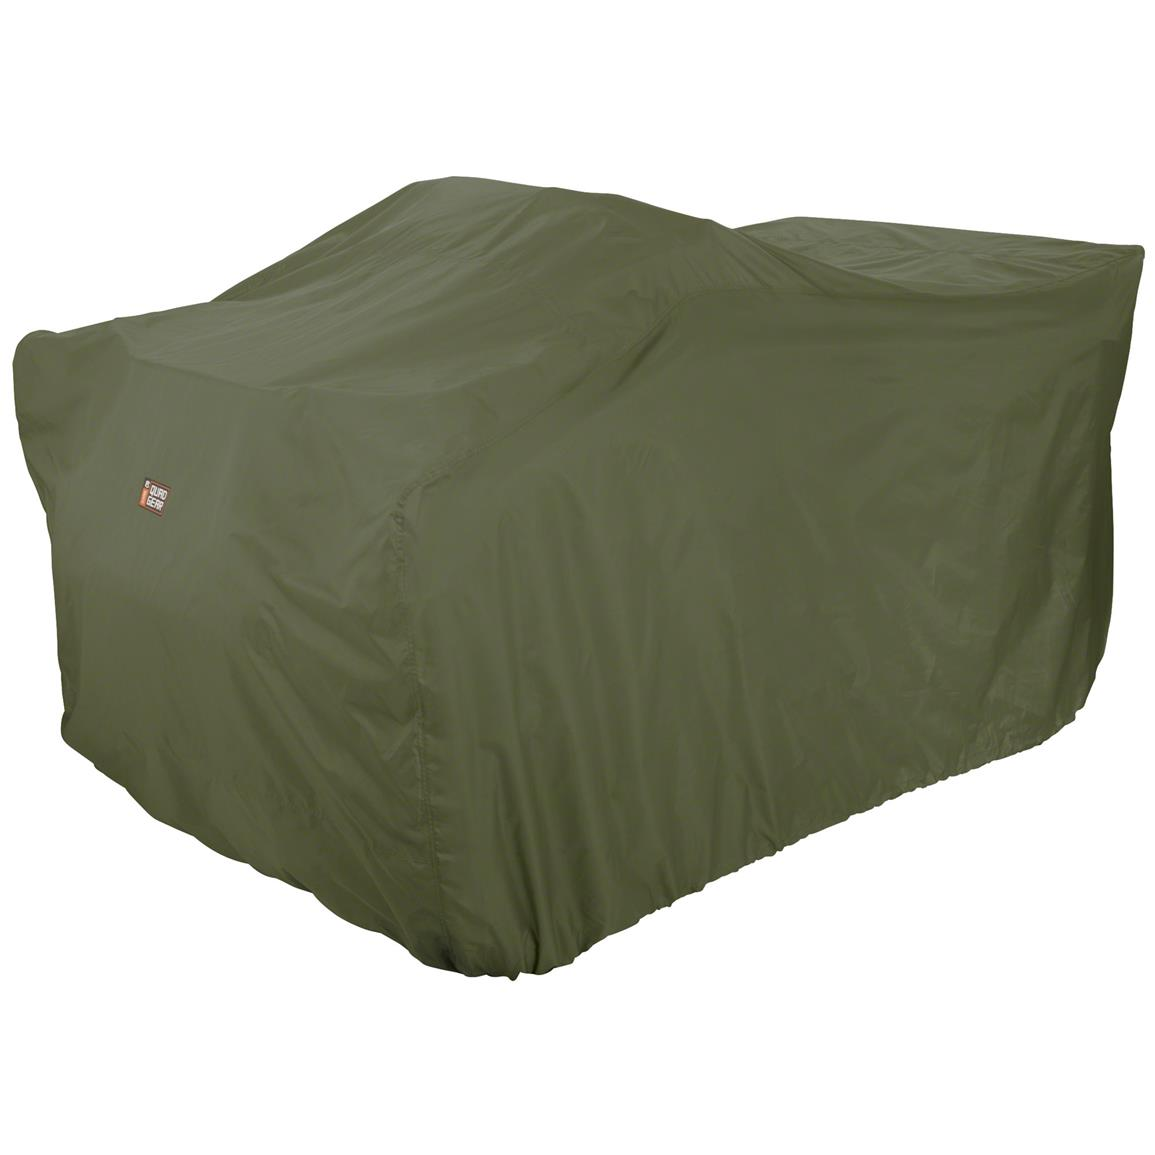 Classic Accessories ATV Storage Cover, Olive Drab